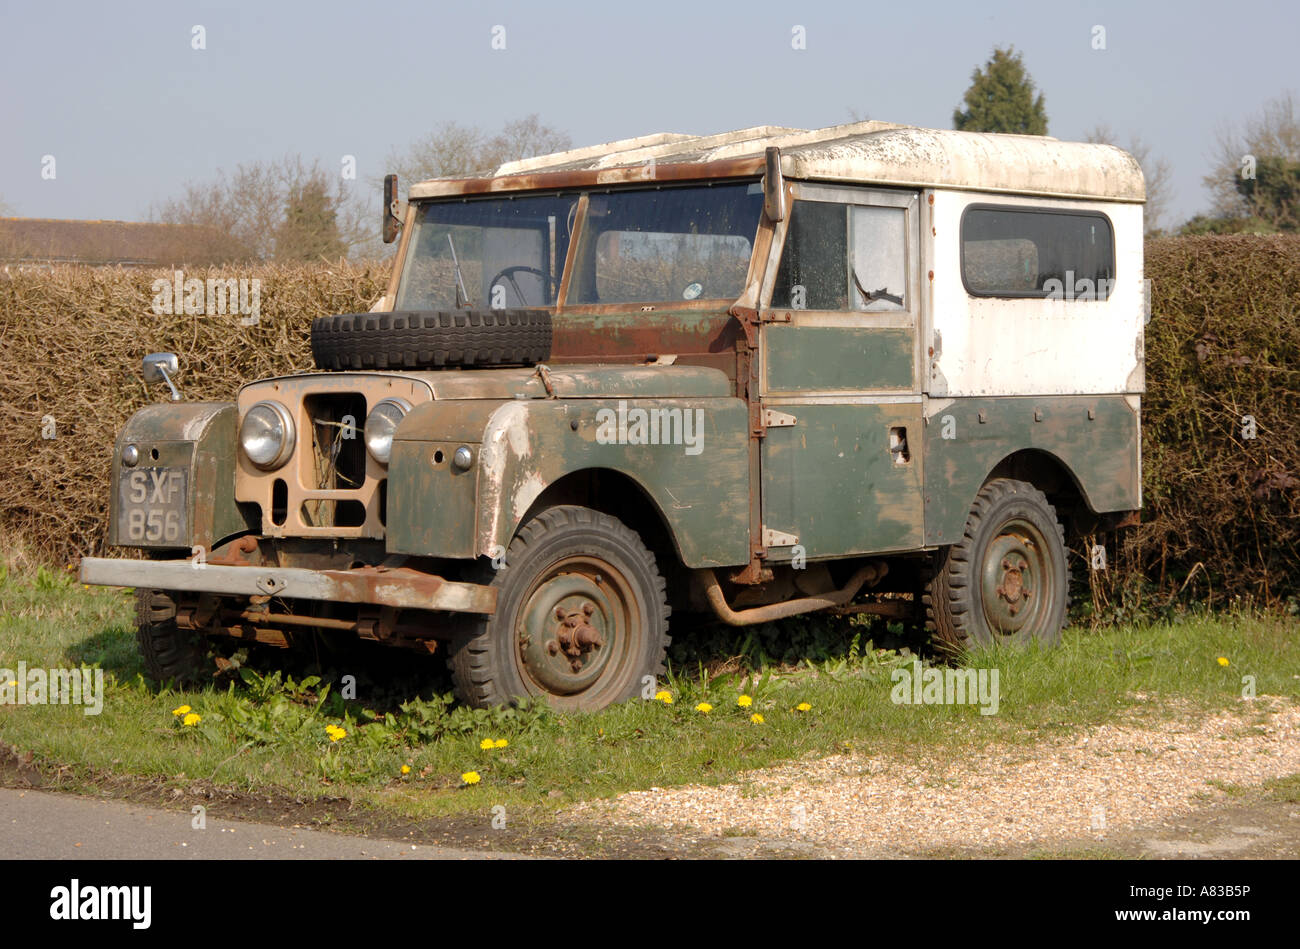 abandoned series 1 land rover stock photo 11973873 alamy. Black Bedroom Furniture Sets. Home Design Ideas